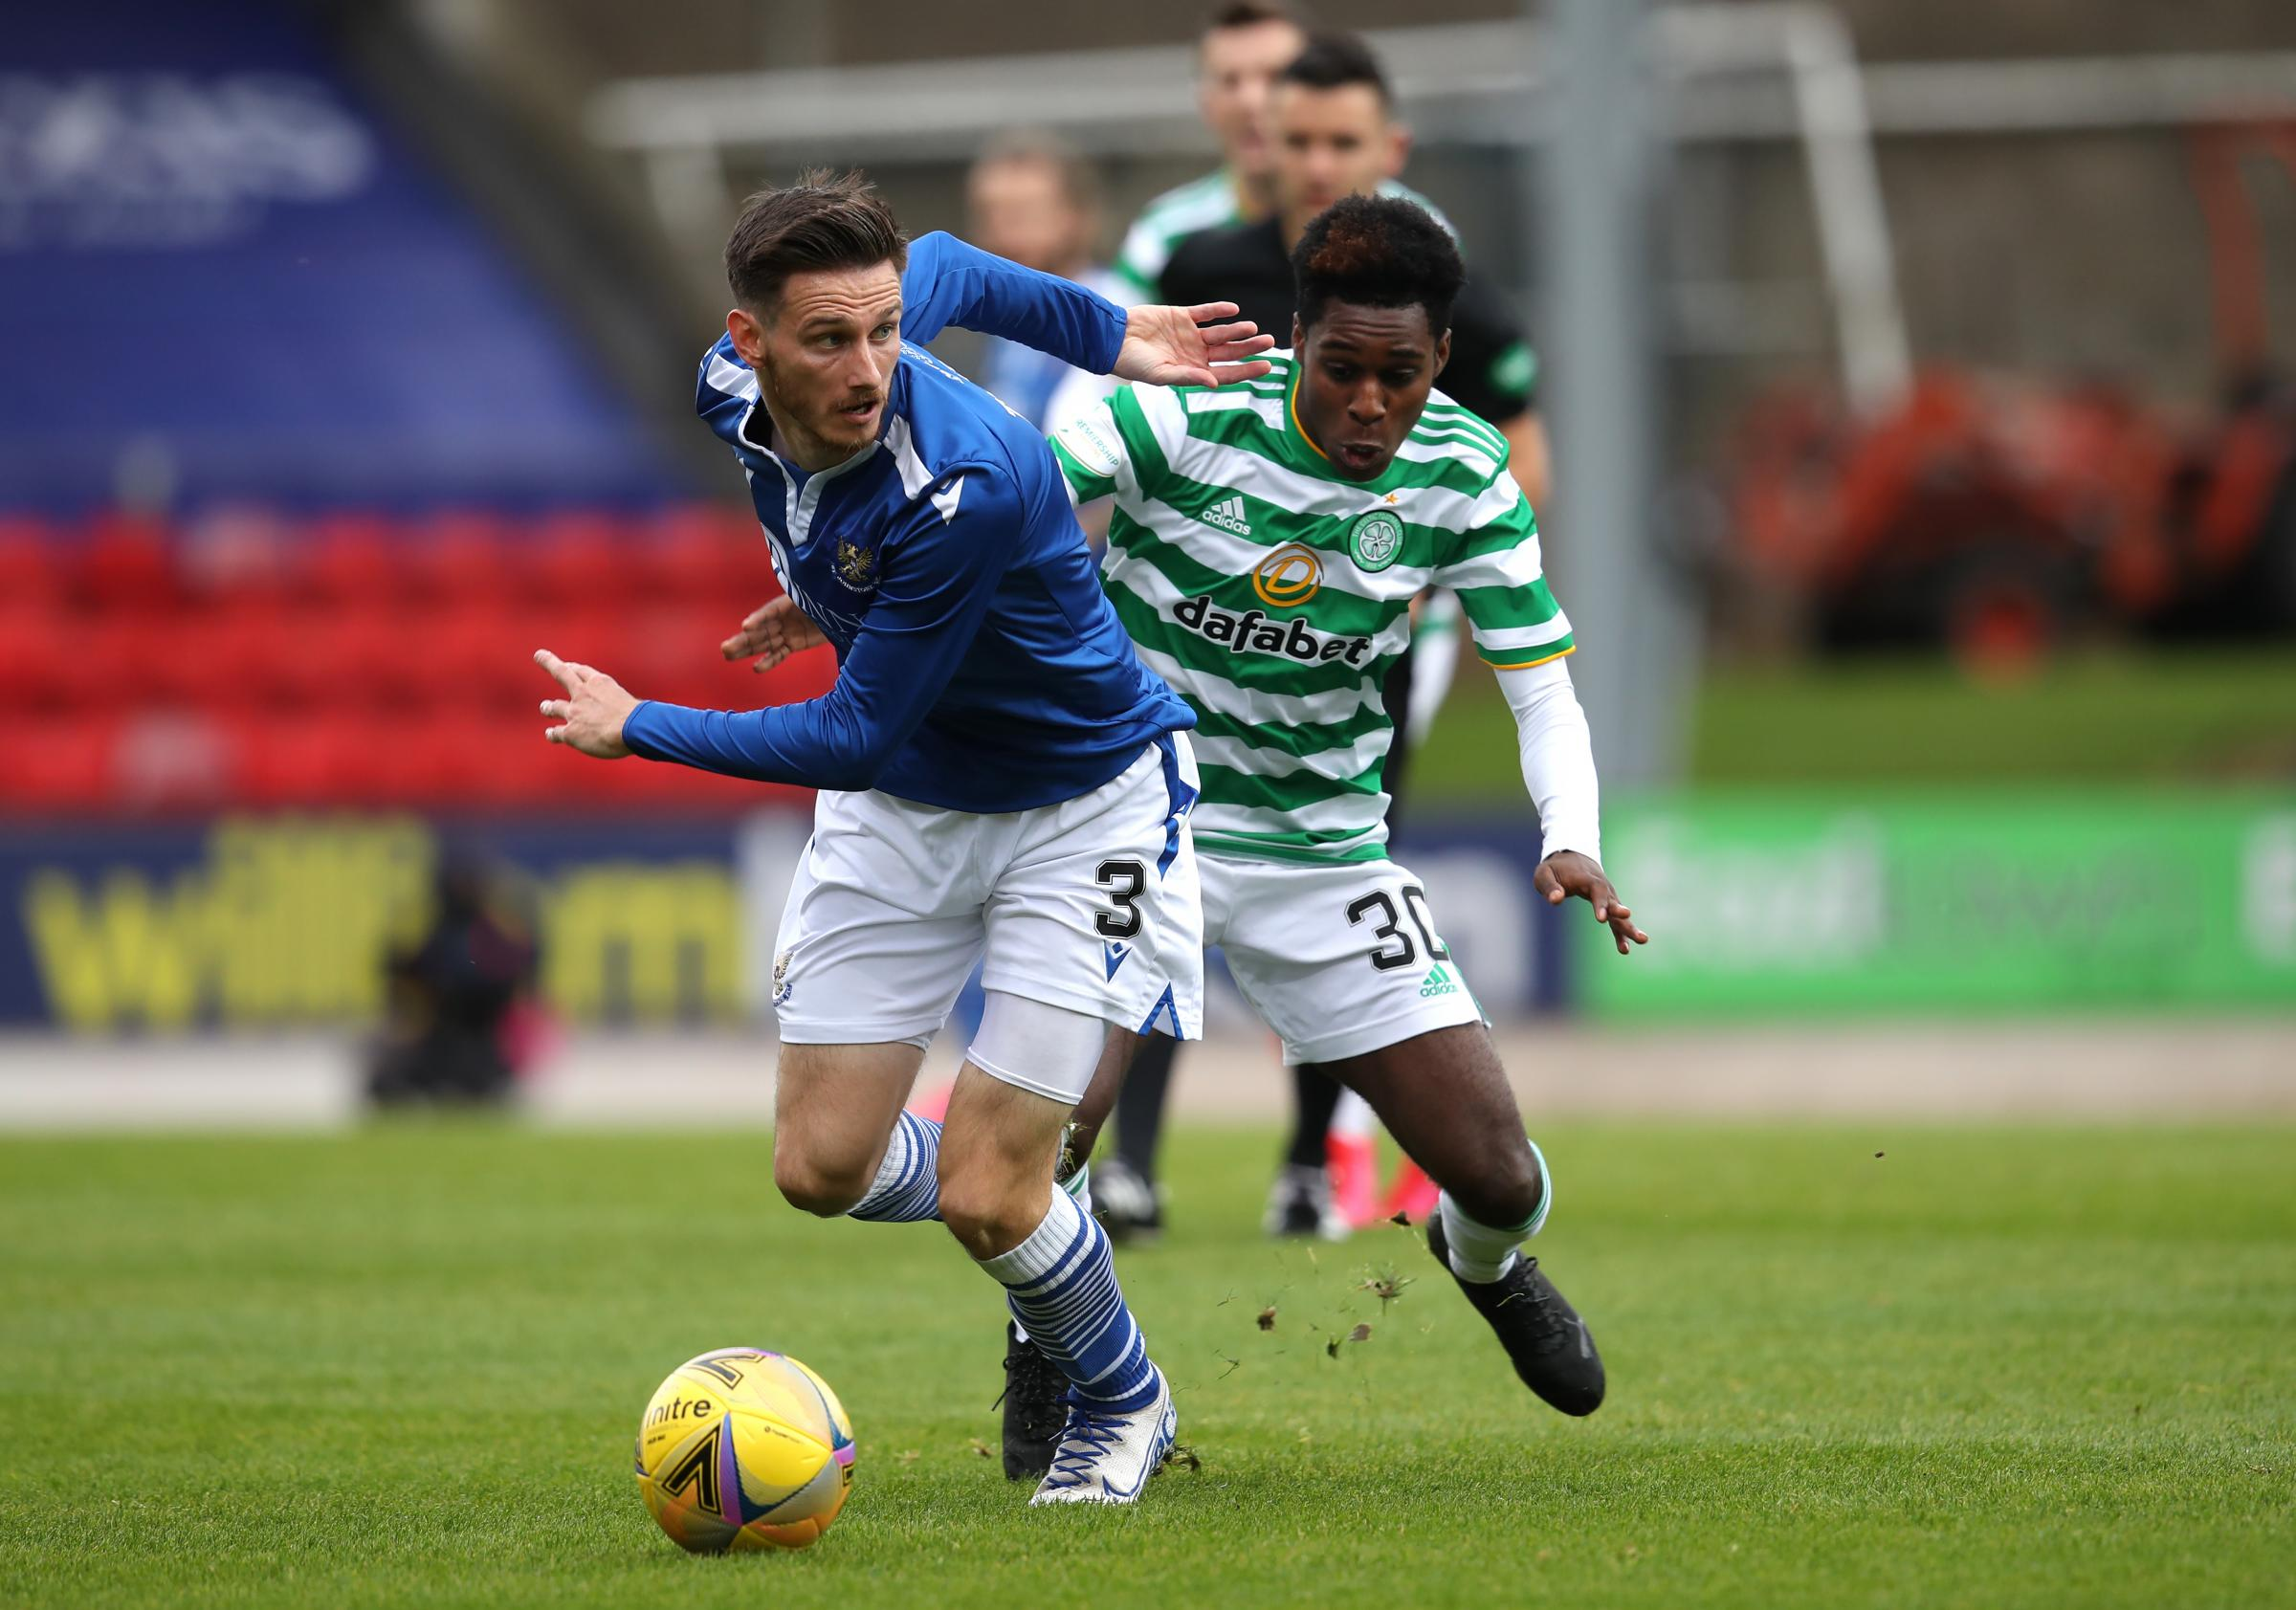 St Johnstone 0-2 Celtic As it happened: Griffiths and Klimala strike late to seal win